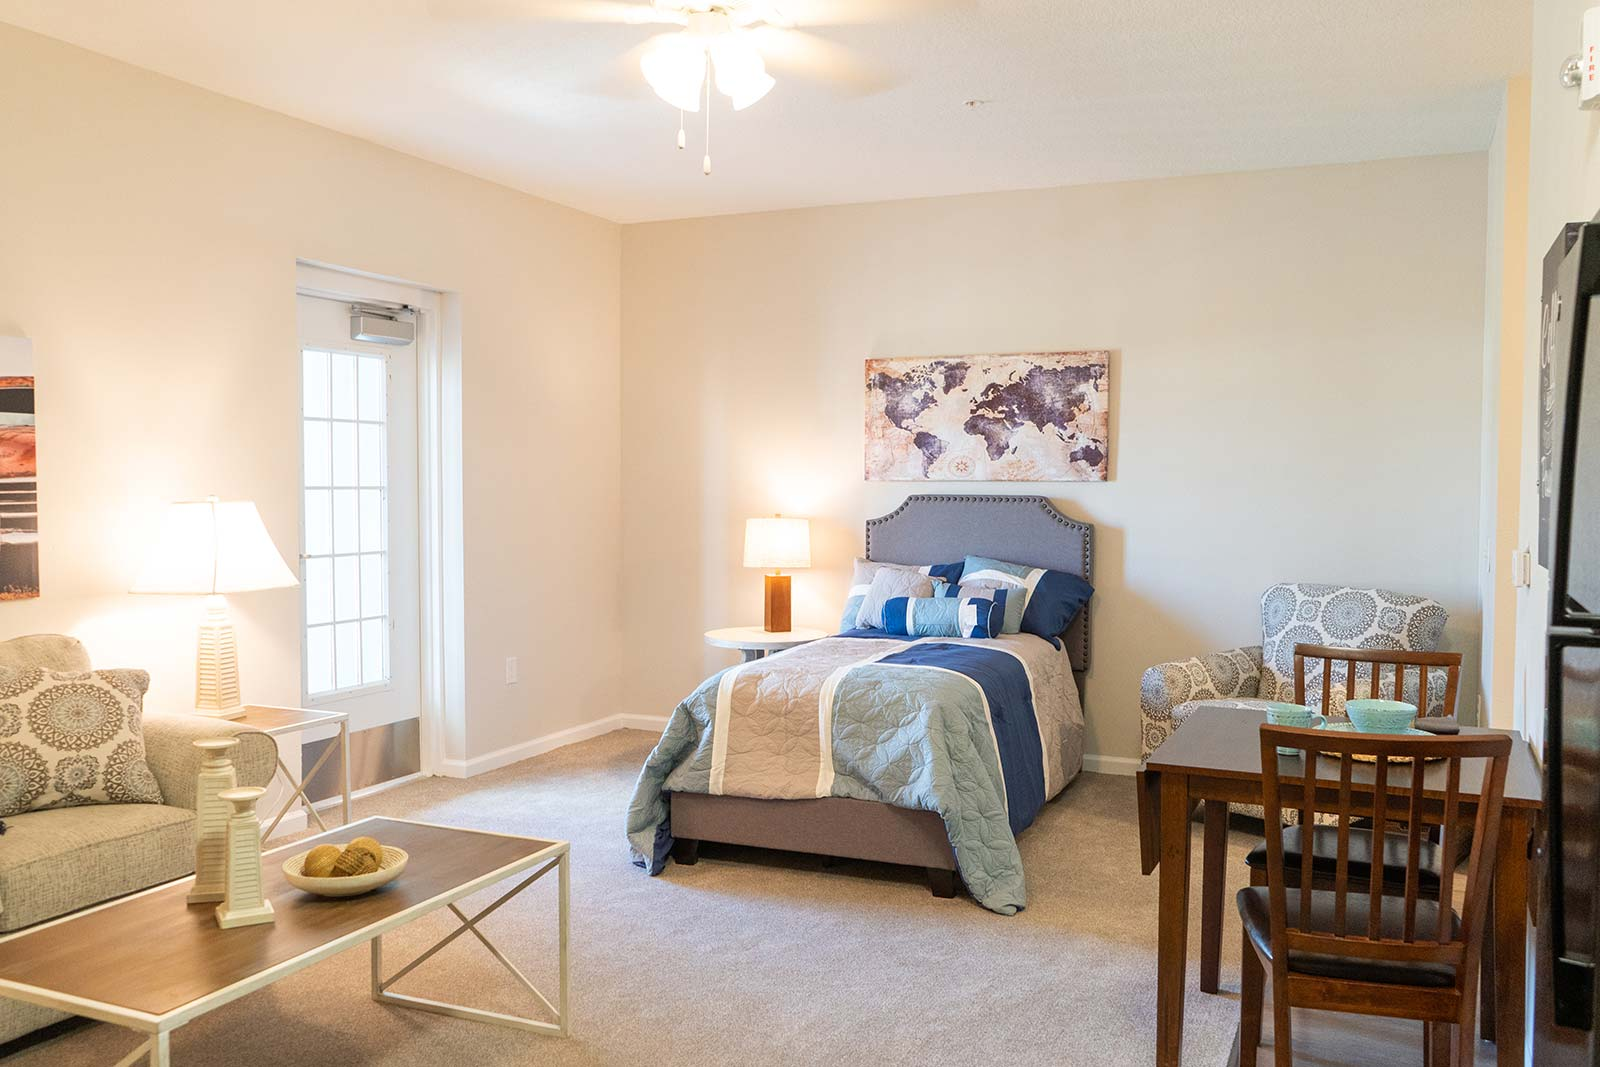 Studio apartment at Sunflower Springs at Trinity assisted living community